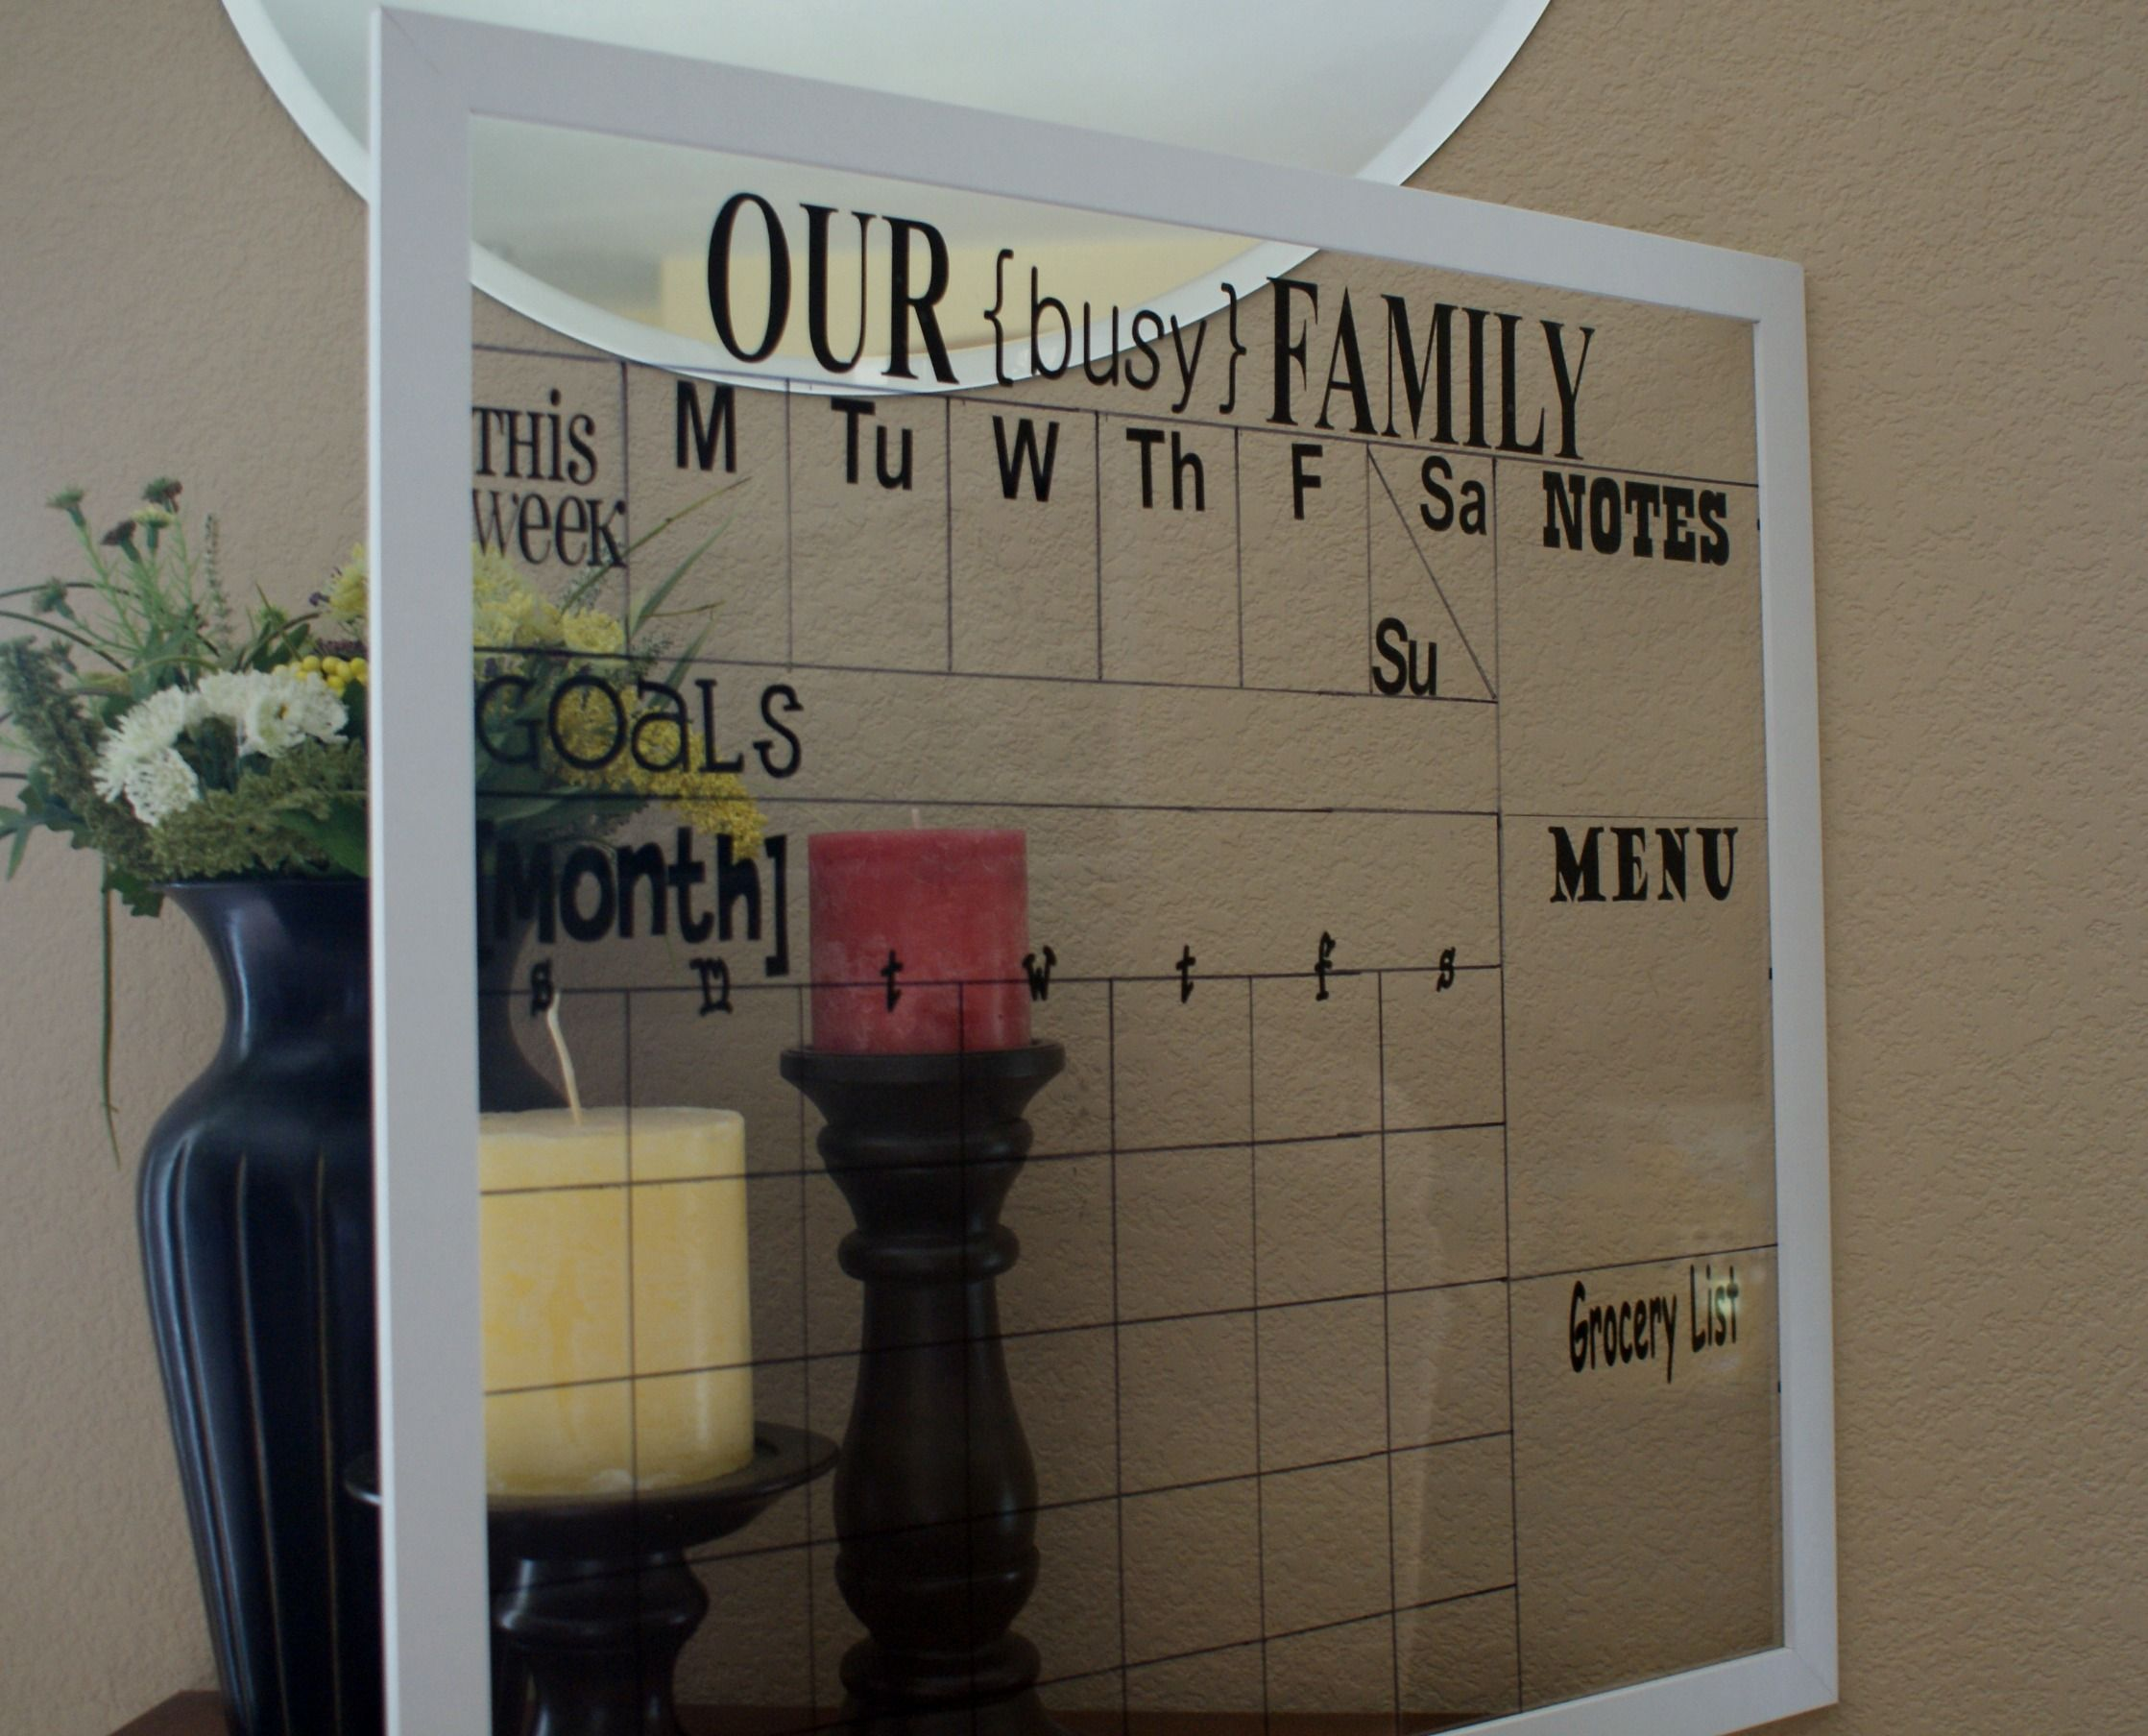 diy dry erase calendar tutorial picture frame wglass vinyl stickers or sharpie marker i love how the back of the picture frame has been removed so